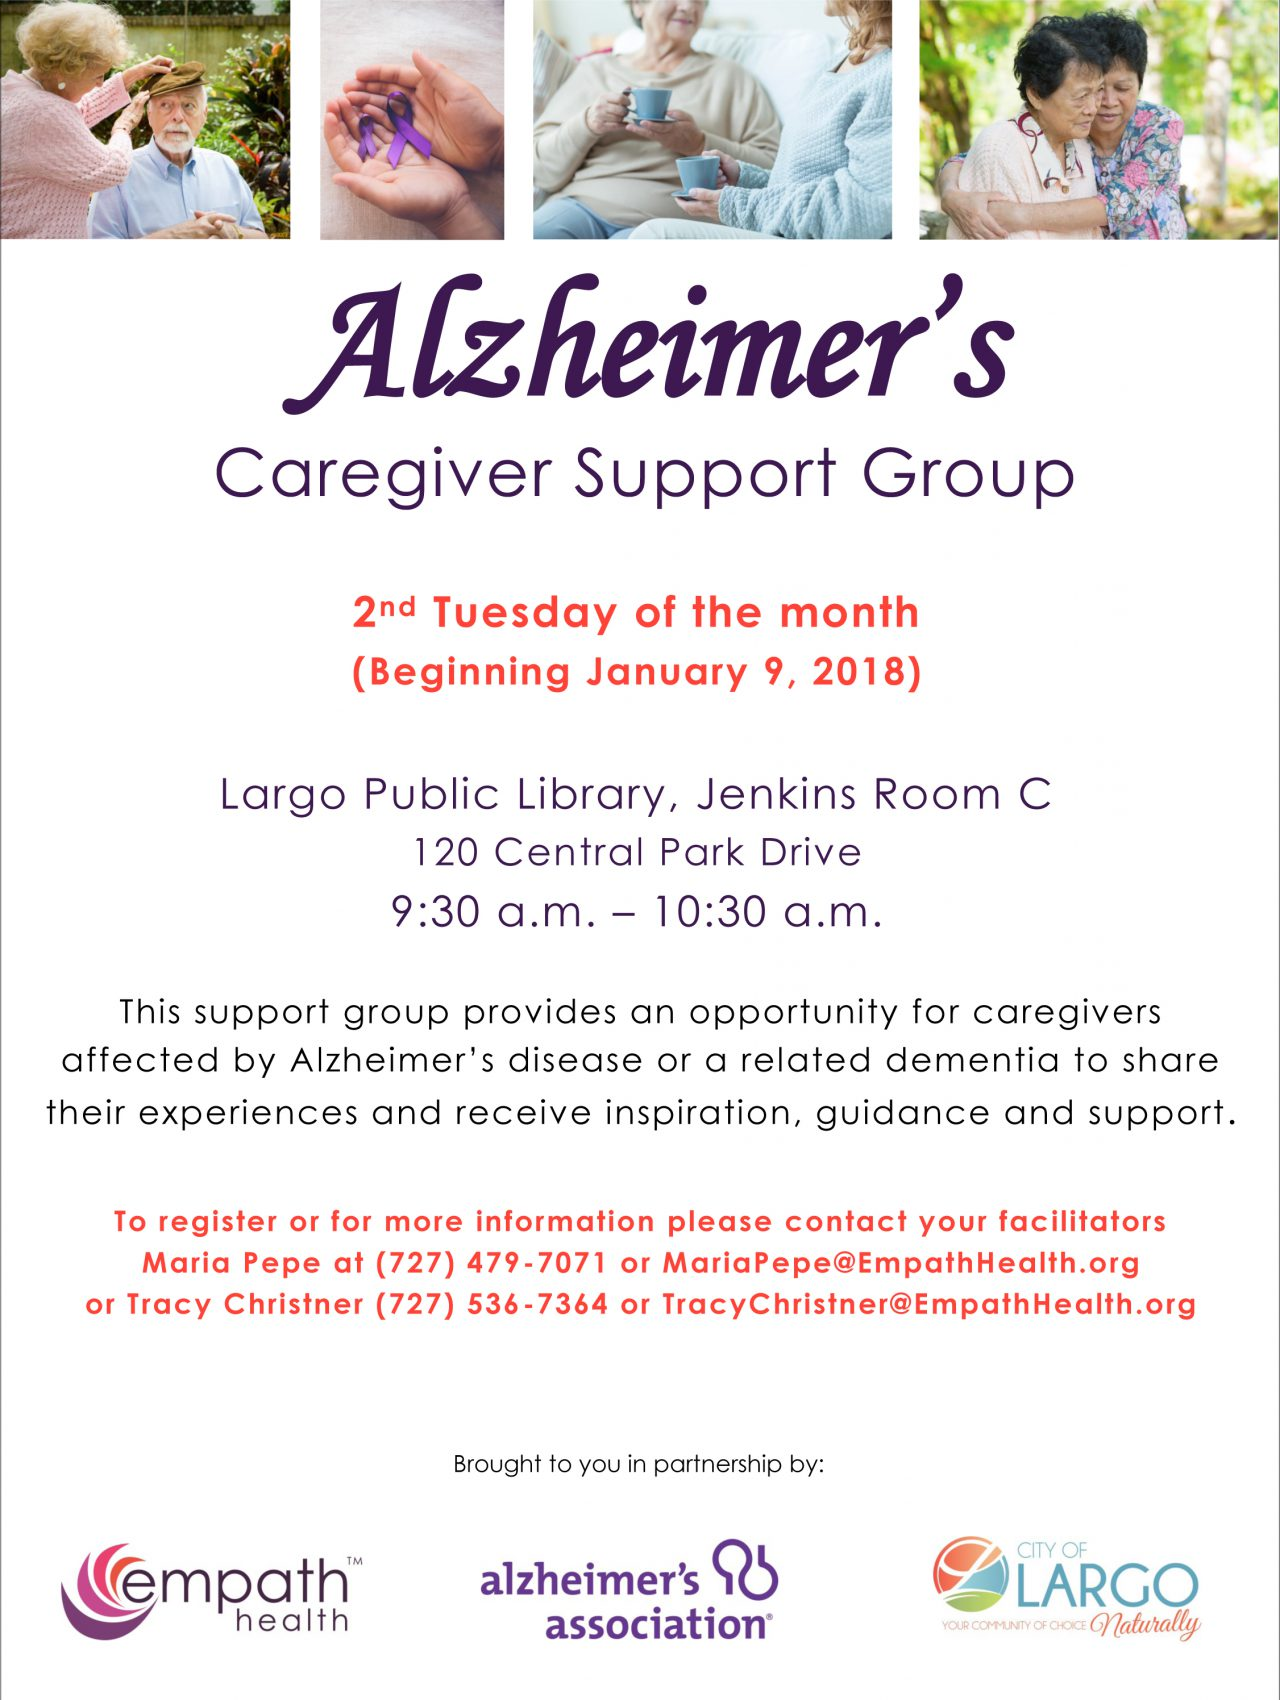 Alzheimer's Caregiver Support Group @ Largo Public Library, Jenkins Room C | Largo | Florida | United States